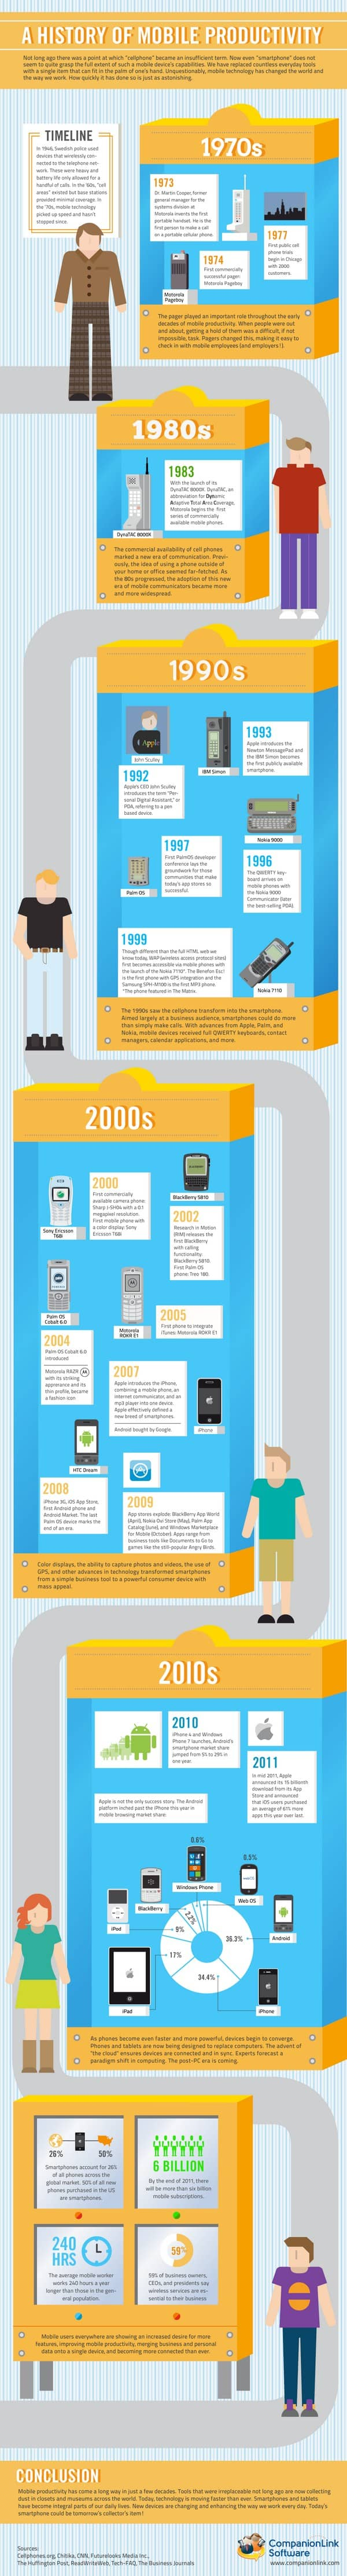 Historic Timeline Of Mobile Productivity Infographic